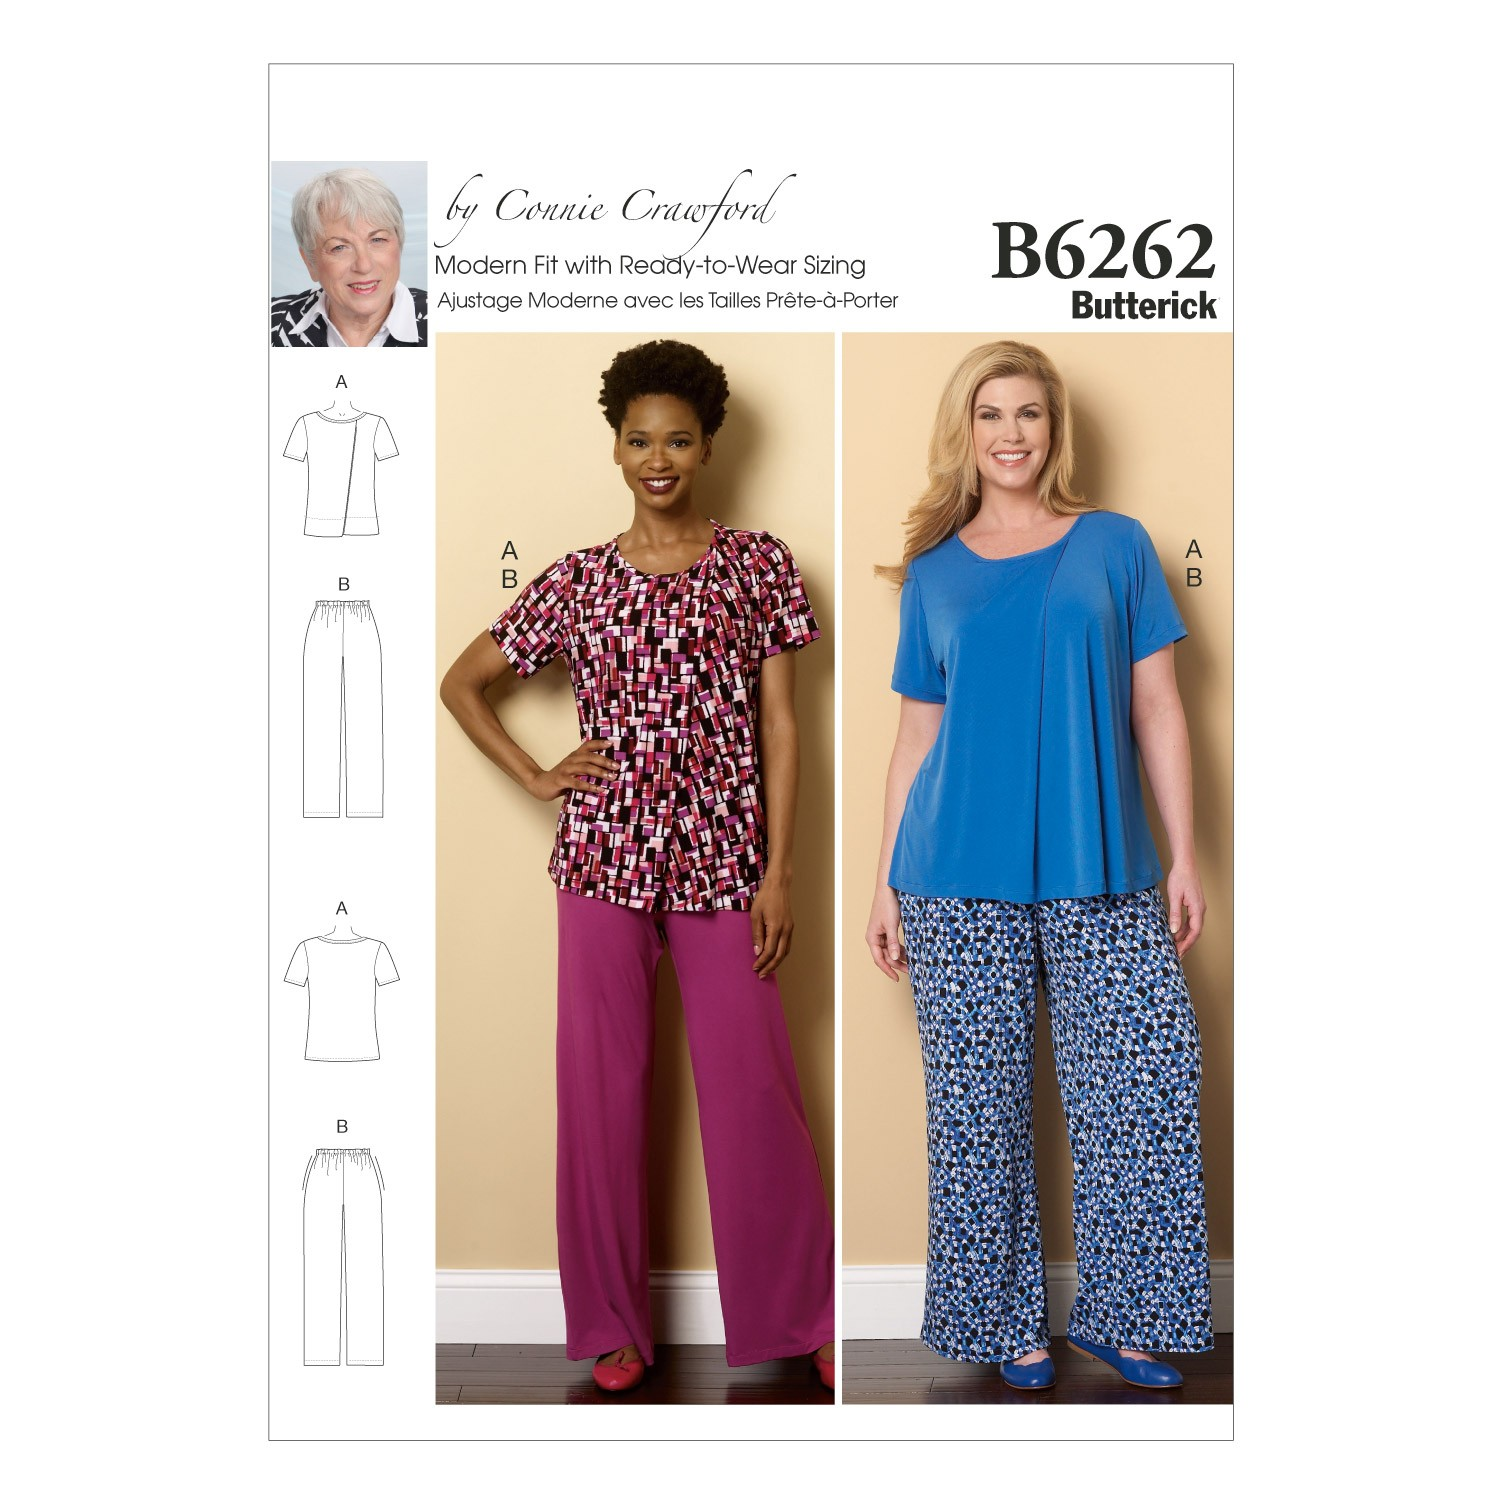 Butterick Sewing Pattern 6262 Misses' Sleep & Loungewear Pyjama